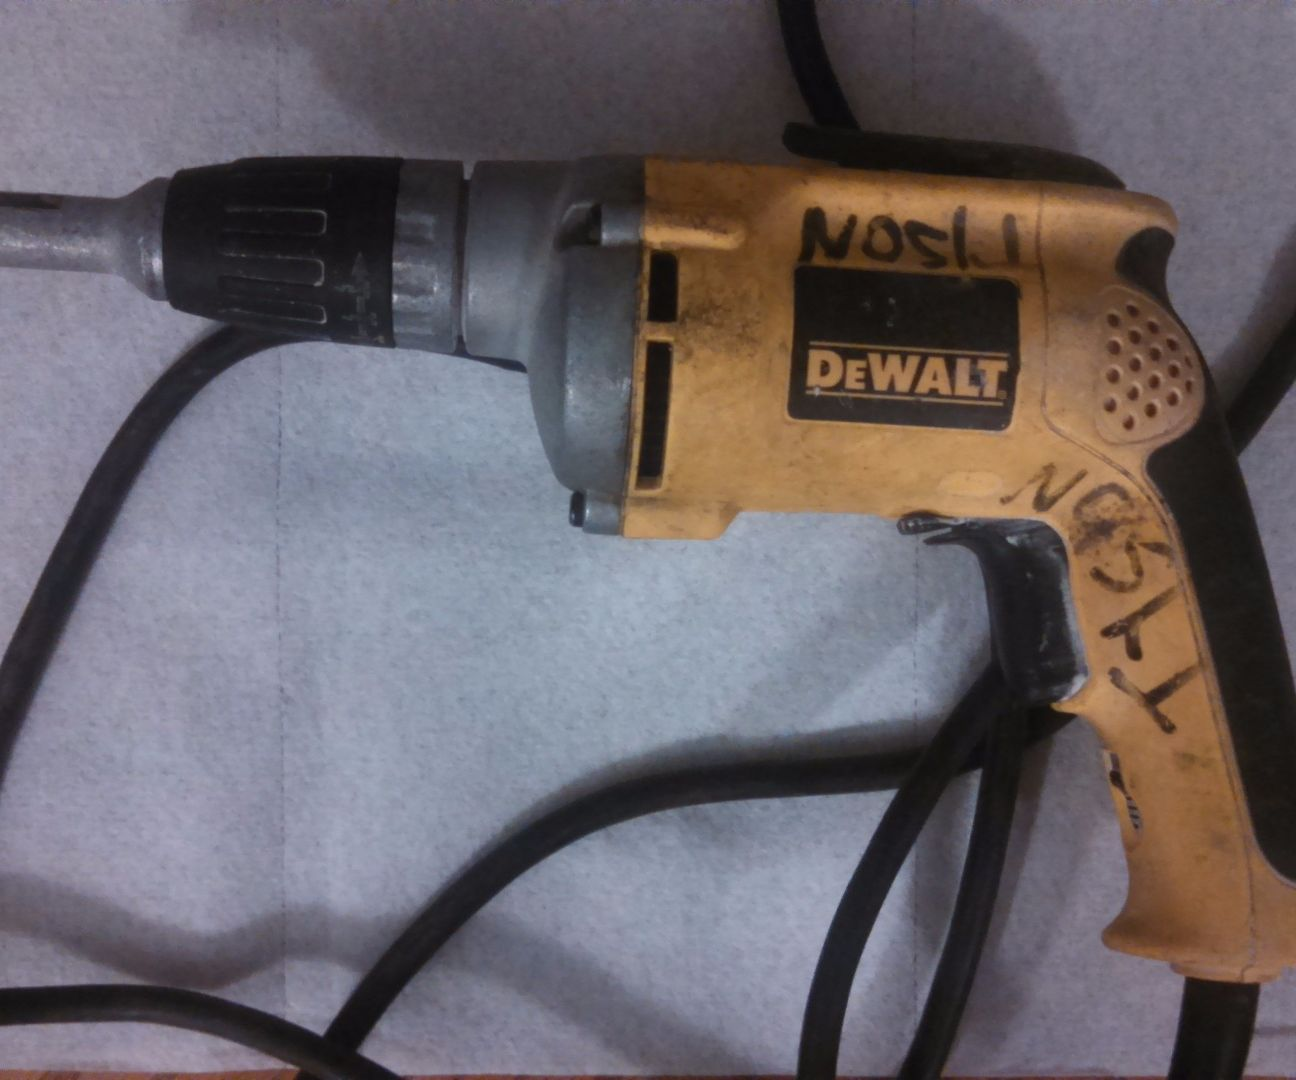 medium resolution of dewalt drywall scrugun repair 6 steps with pictures de walt power tool wiring diagrams